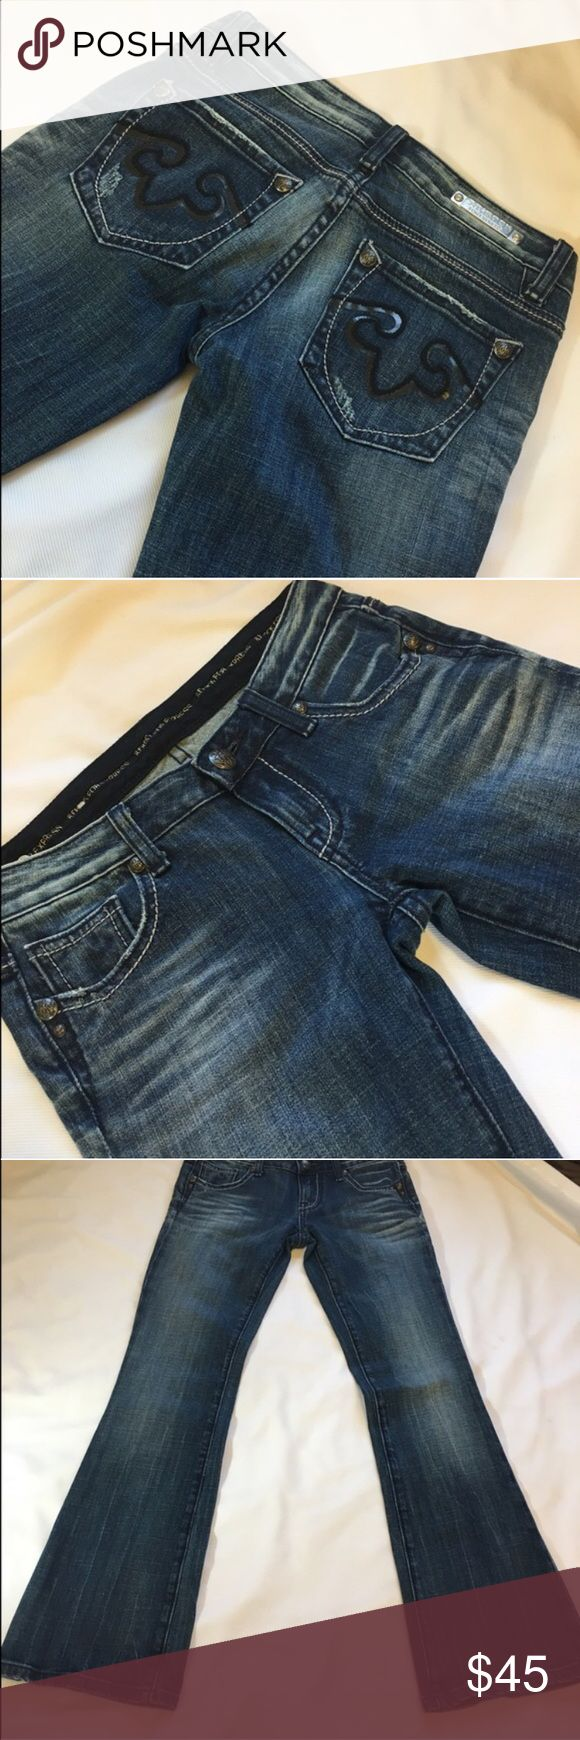 """🆕Express Rerock NWOT Jeans 0S Gorgeous jeans, they just barely don't fit me :(. $95 new. Zero short so perfect for someone 5'3"""" - 5-6"""" i love this brand of jeans, i get compliments and they are really high quality, these just never fit. So now you get to love them!                                                                         🔹Jeans medium wash 🔹Size: 0s 🔹new without tags 🔹Smoke free house.  🔹Fragrance free home. 🔹No trades please. 🔹Make an offer, bundle for 20 or 30% off…"""